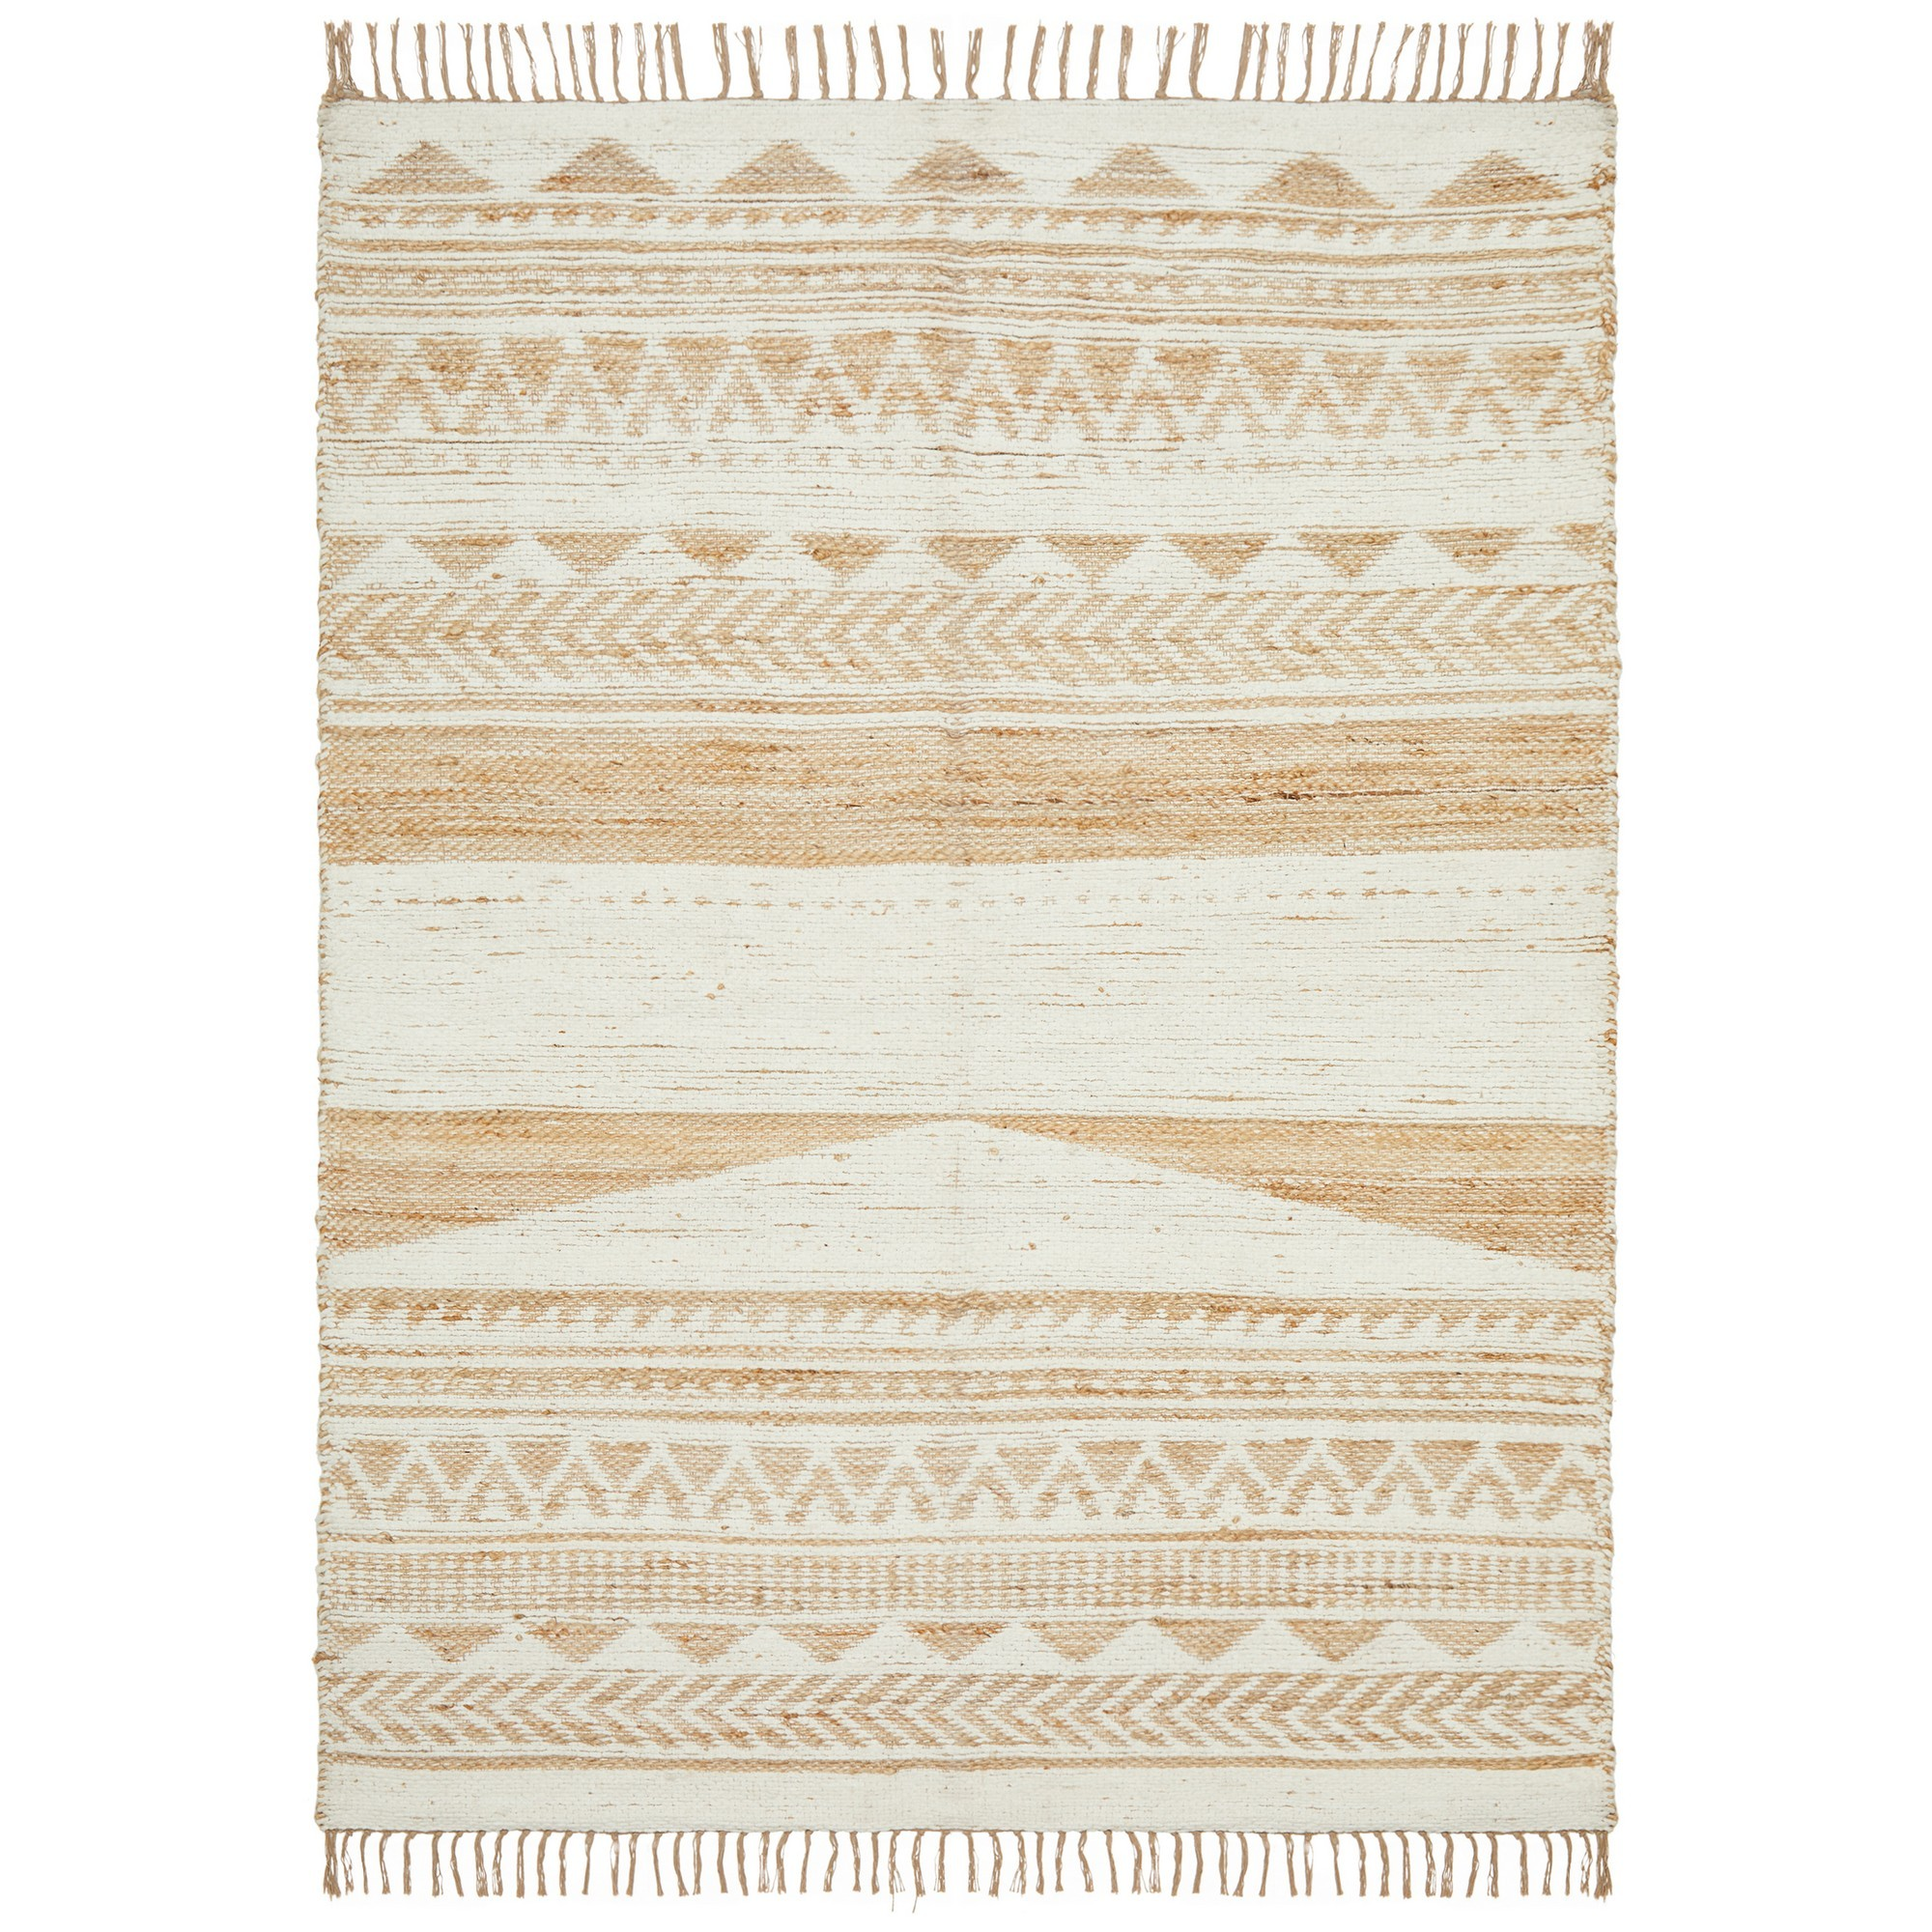 Parade Giselle Hand Loomed Jute & Cotton Chenille Rug, 300x400cm